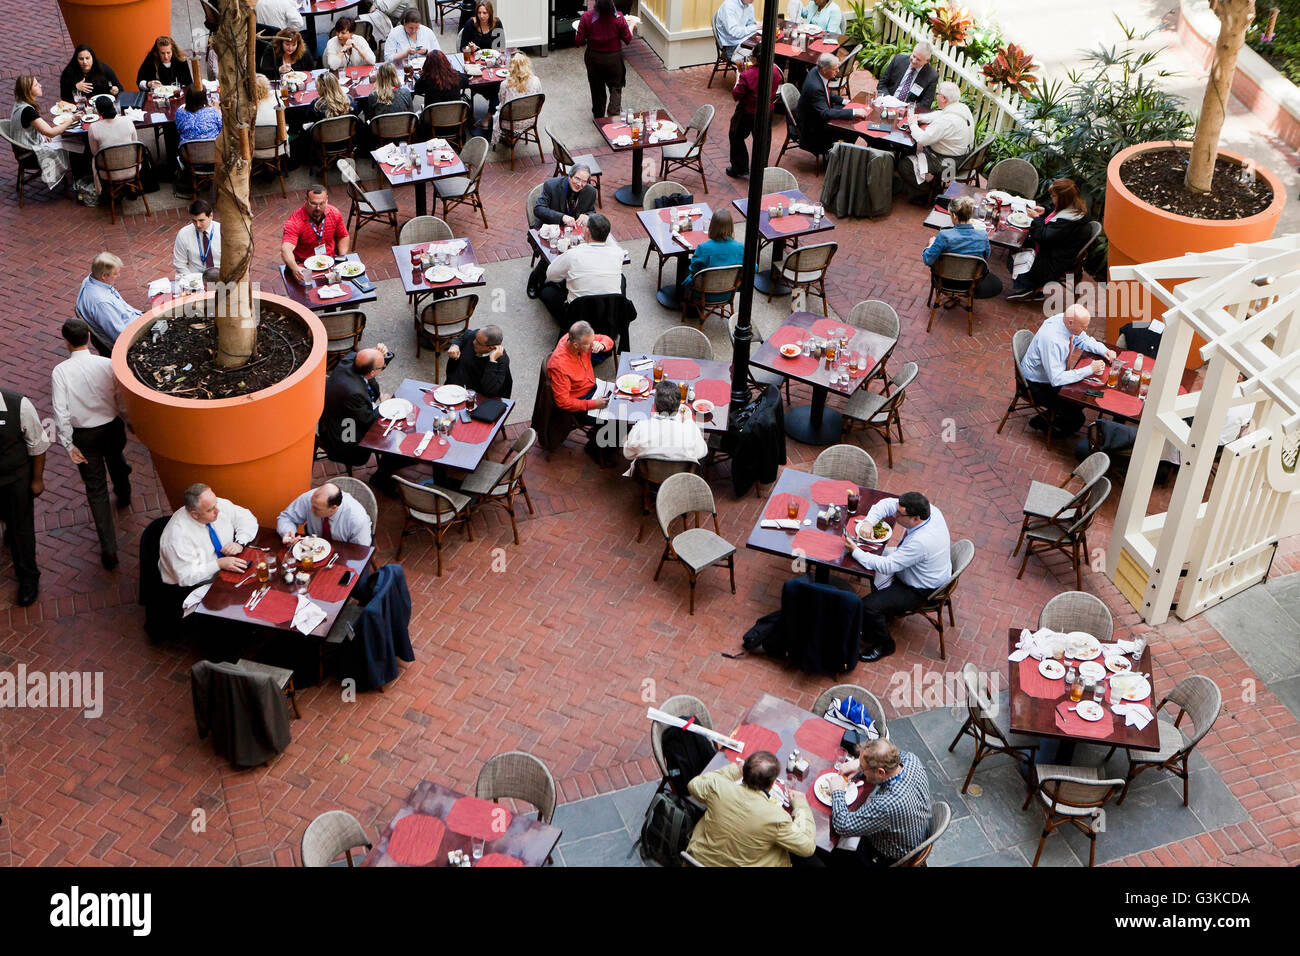 Diners at hotel restaurant from above - USA - Stock Image